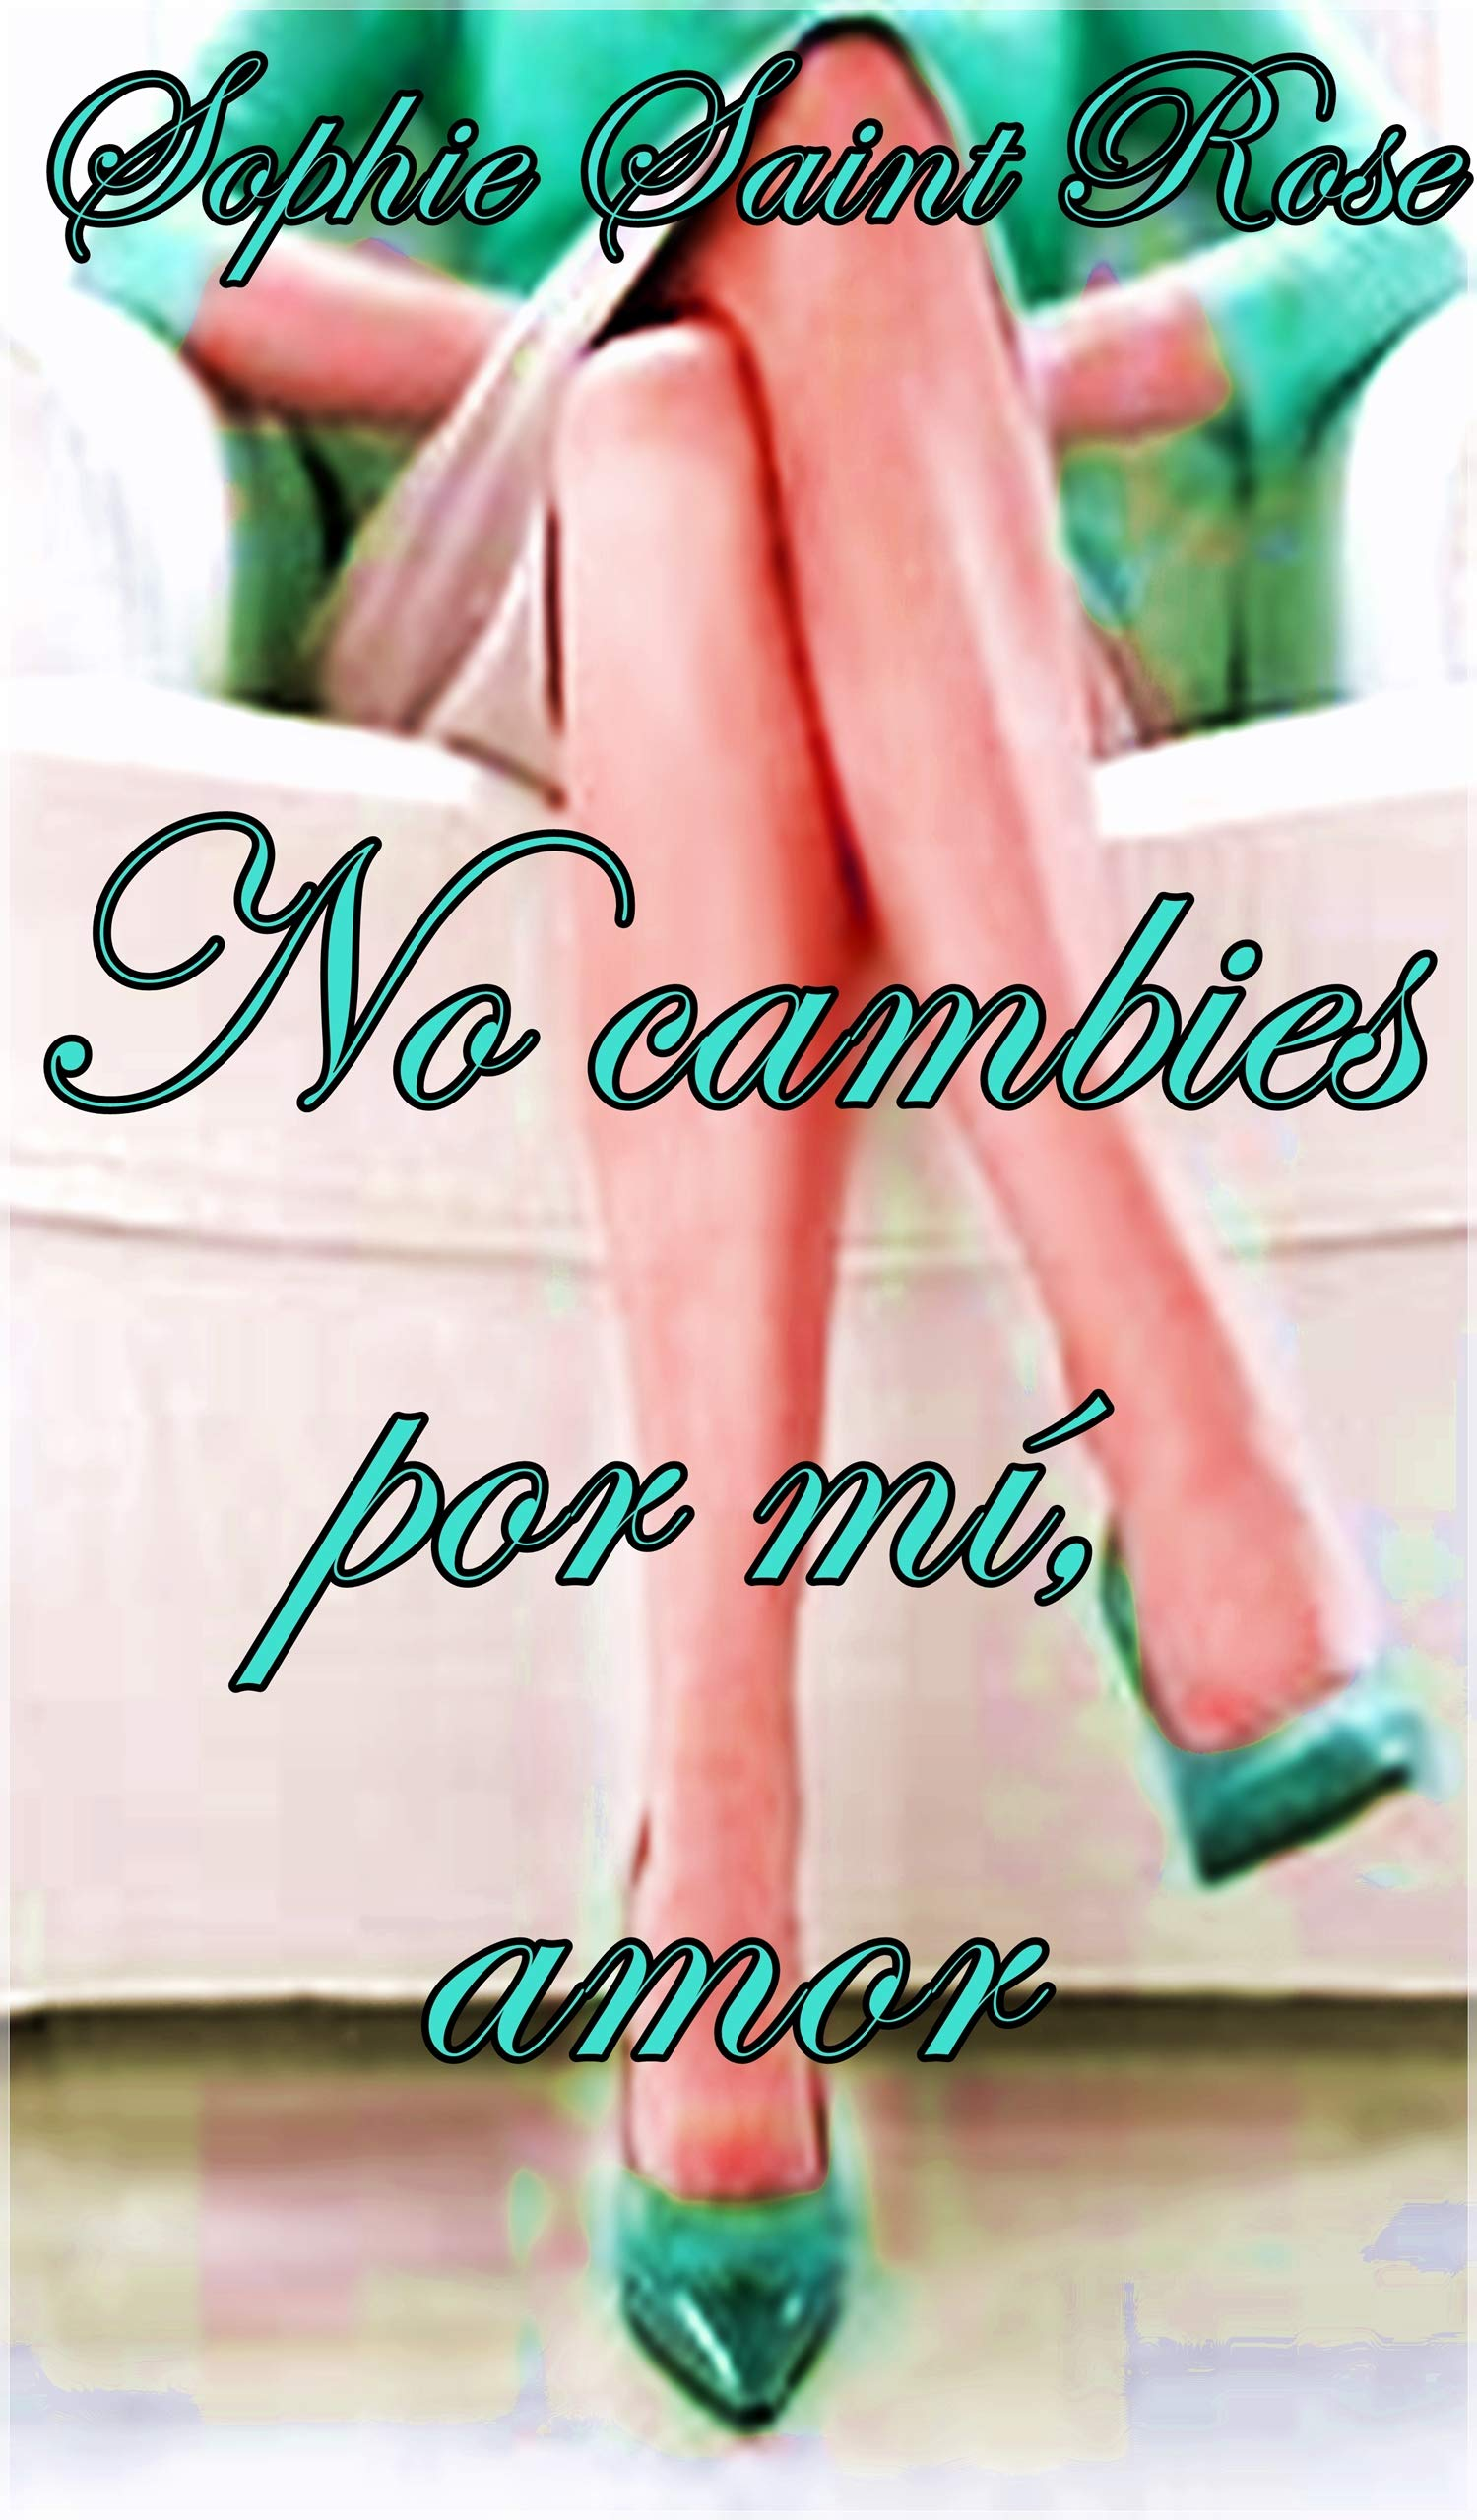 No cambies por mí, amor por Sophie Saint Rose